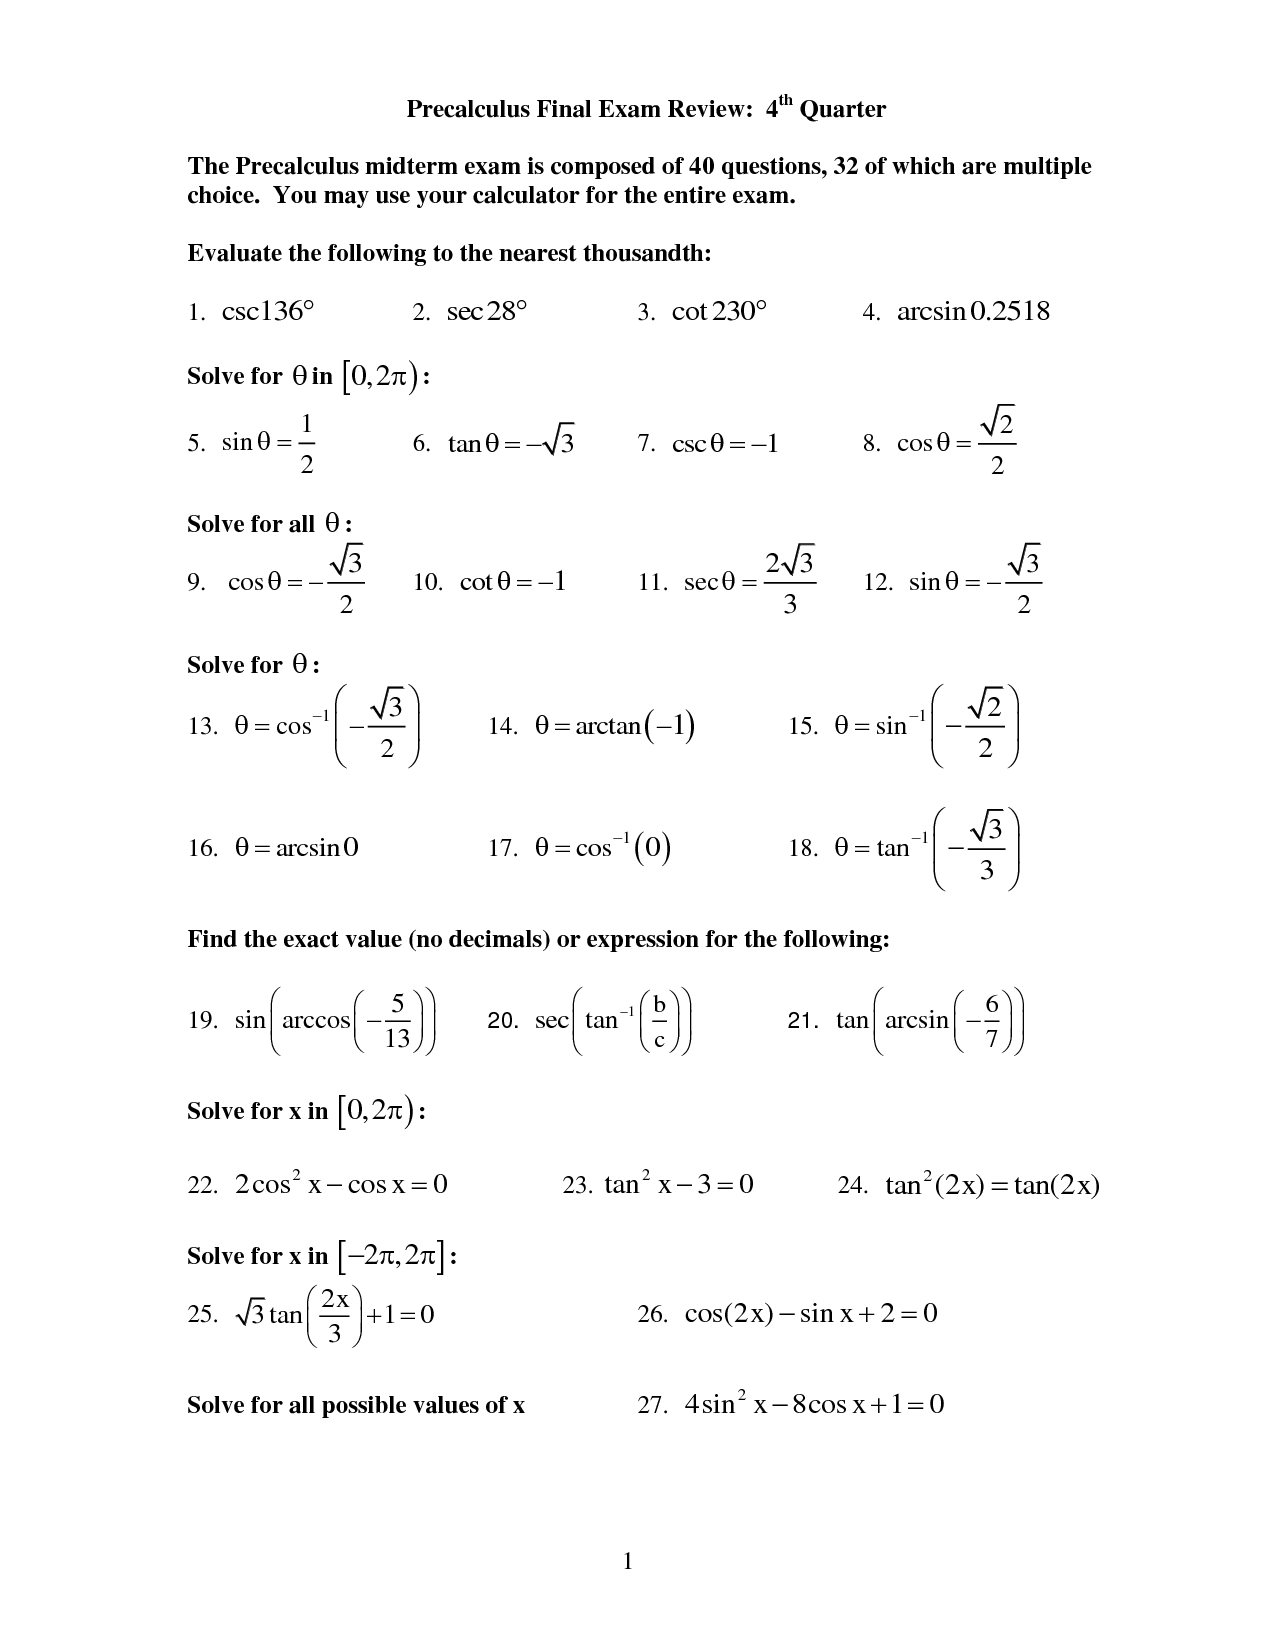 Precalculus Practice Exam Worksheets